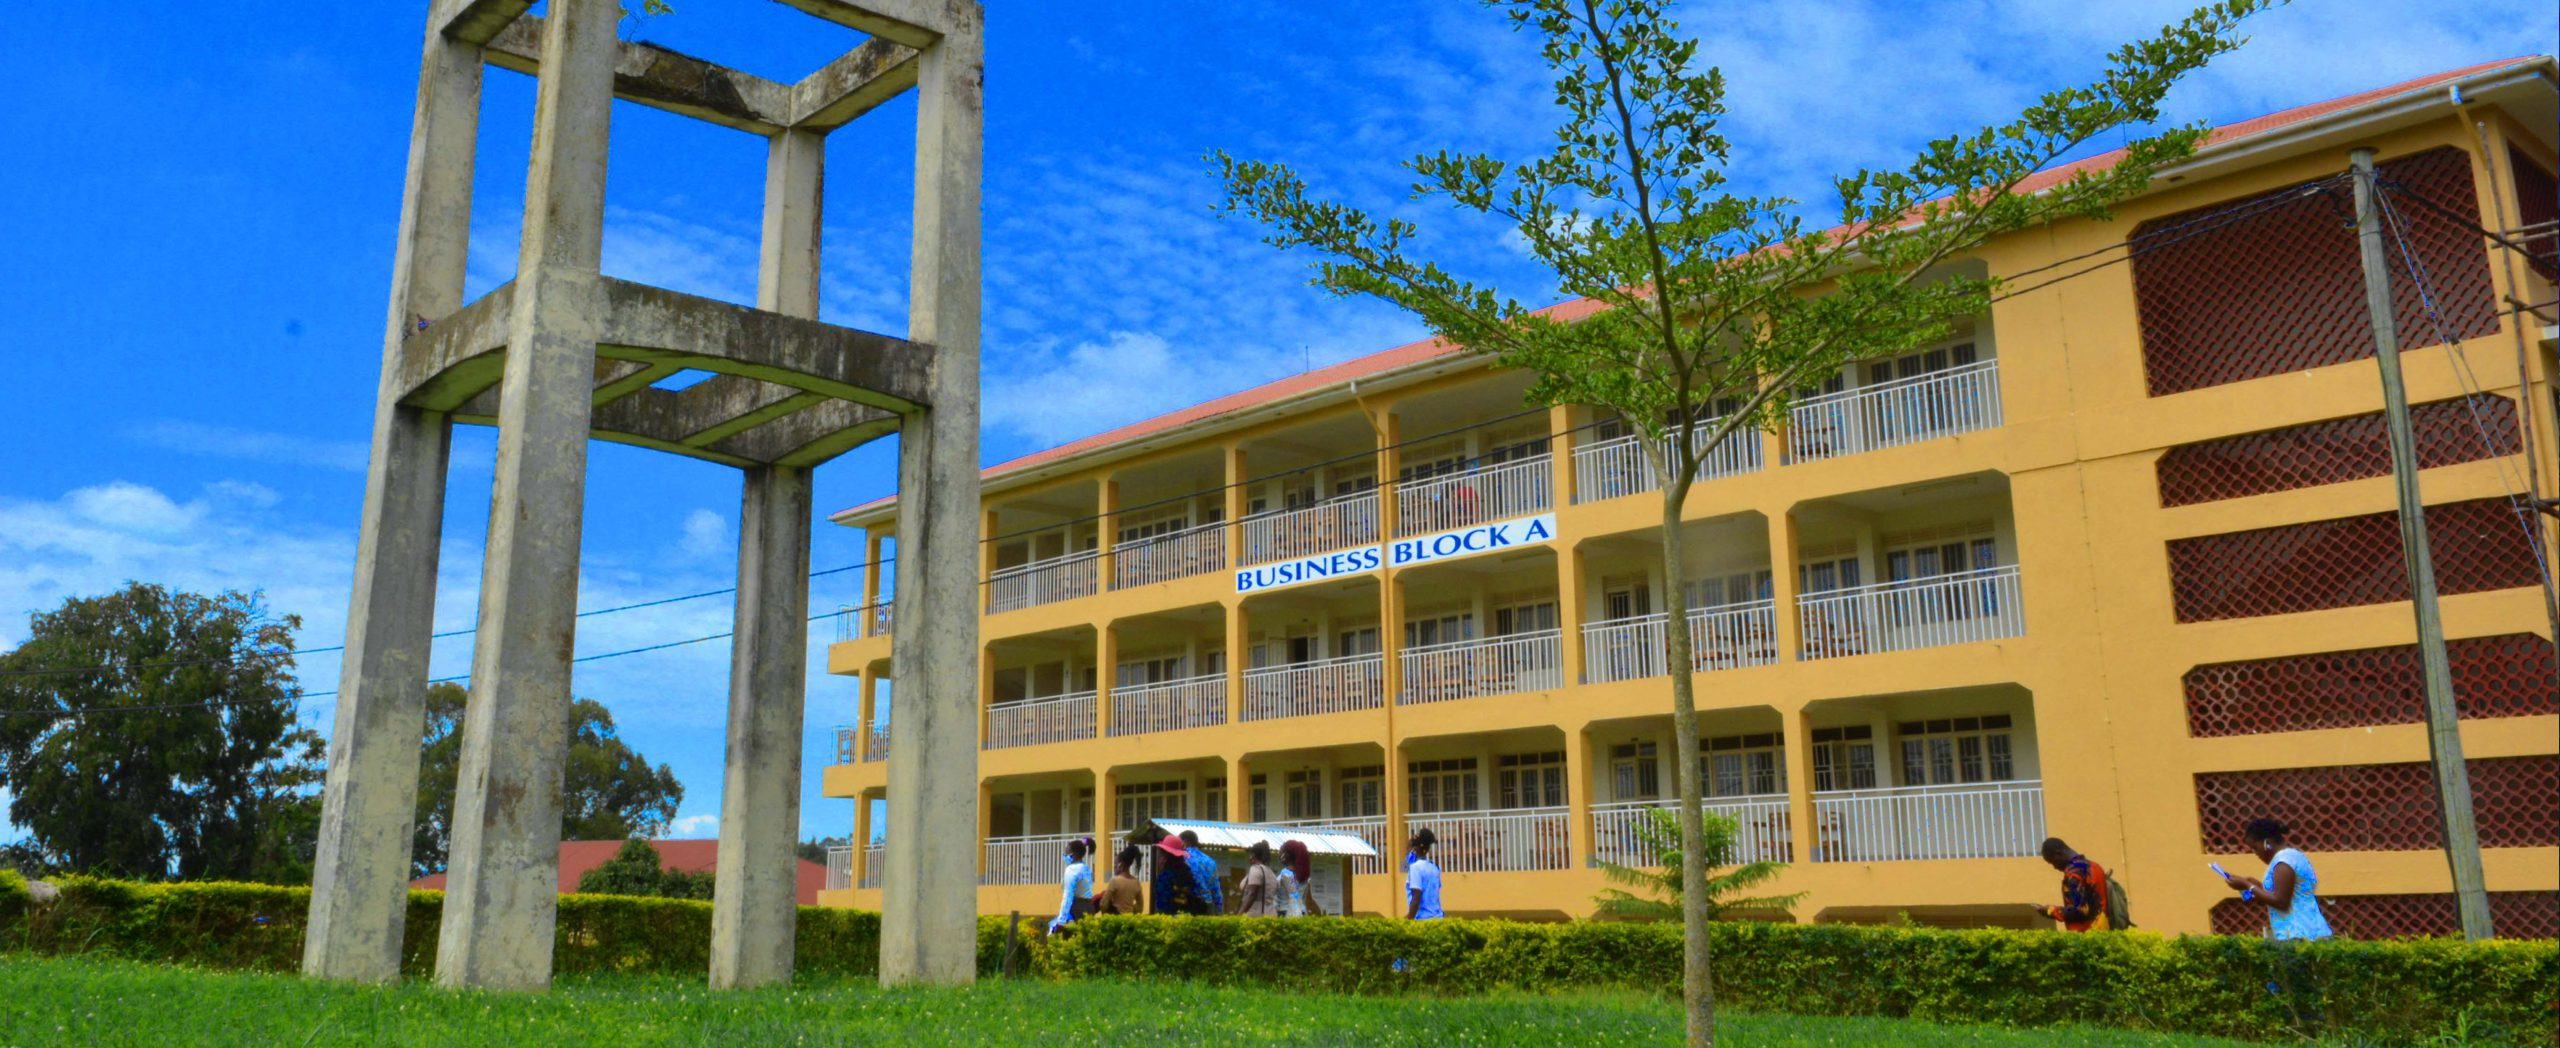 Faculty of Business Economics and Governance